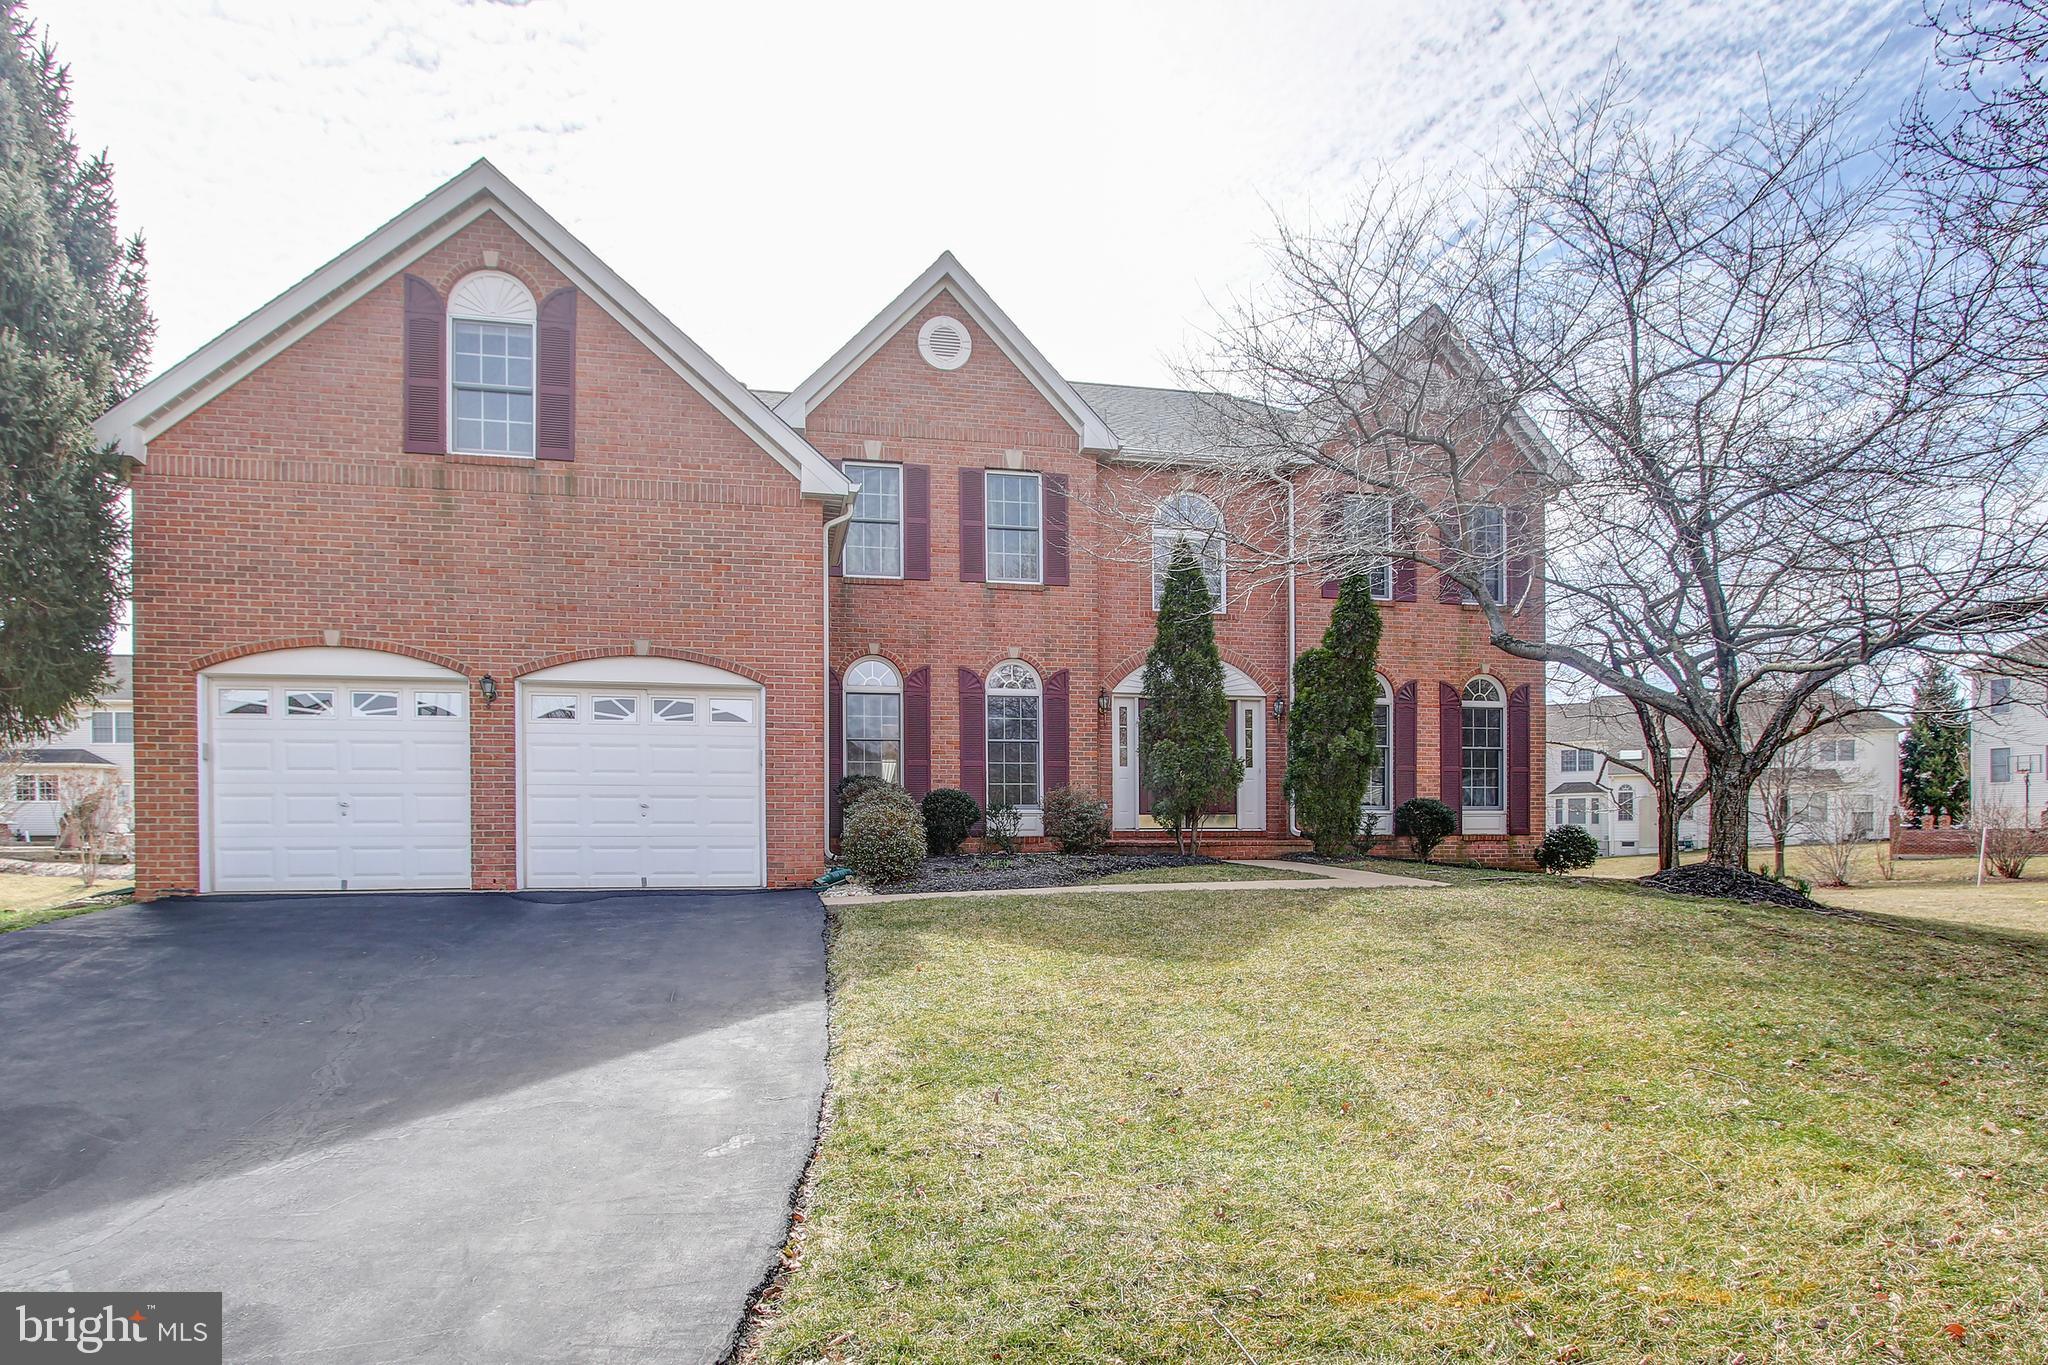 "FOR SALE **Stunning Beautiful 4BR 3.5BA home in Middleton Farm on 1/2 acre Lot** HardwoodFloors throughout. Lots of natural light **2 Story Foyer w/ Dual Stairs. Liv rm & Cozy Library. Bright Fam Rm w/Gas Fireplace & Skylights. Breakfast Room and Custom Kitchen w/ SS Appliances, New Quartz  Counters, New Floors, 42""Cabinets ,  Cooktop, Pantry, & more! W/D main lvl. Gleaming New Hardwood floor thru-out the home. Master Bedroom has HUGE Walk-in (20 ft long!) & Sitting Room. Attached BA w/ Jacuzzi Tub, shower, Dual Vanities. **Roof Replaced in 2015 ** Heat pump and washer/Dryer replaced in 2017**Unfinished basement. Spacious 2 Car Garage. **Floris-Carson-Westfield school district**Premiere Fairfax County Schooling District**close to Major Shopping, Restaurants, Airports, Future Metro , Reston Town Center , Dulles HI-TECH Corridor and More. This is a must see**"